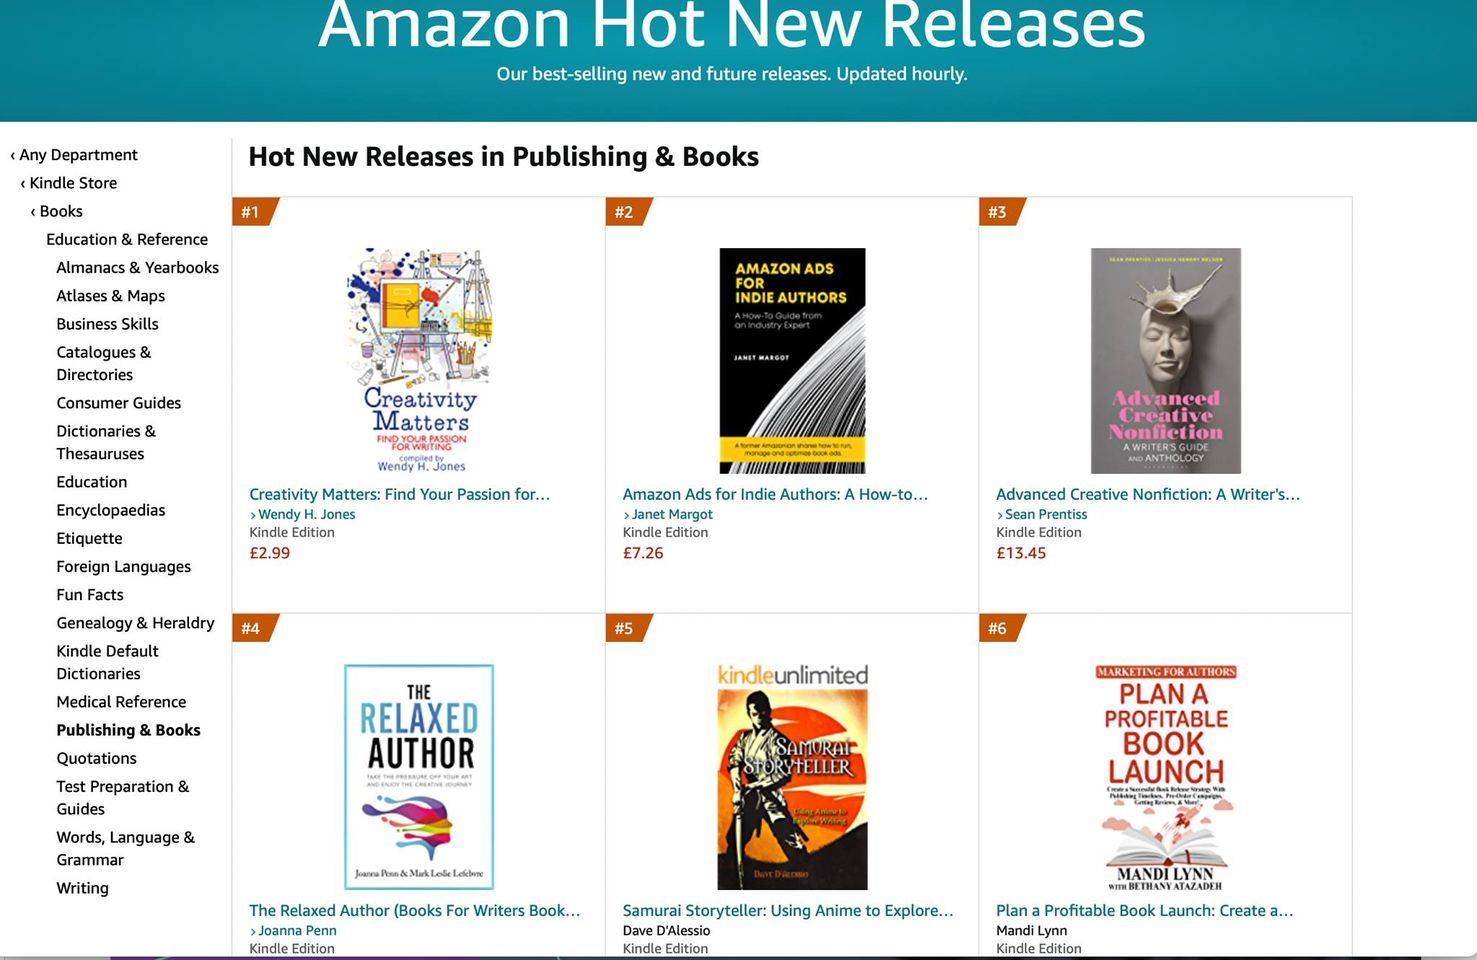 Creativity Matters - Number 1 Hot New Releases